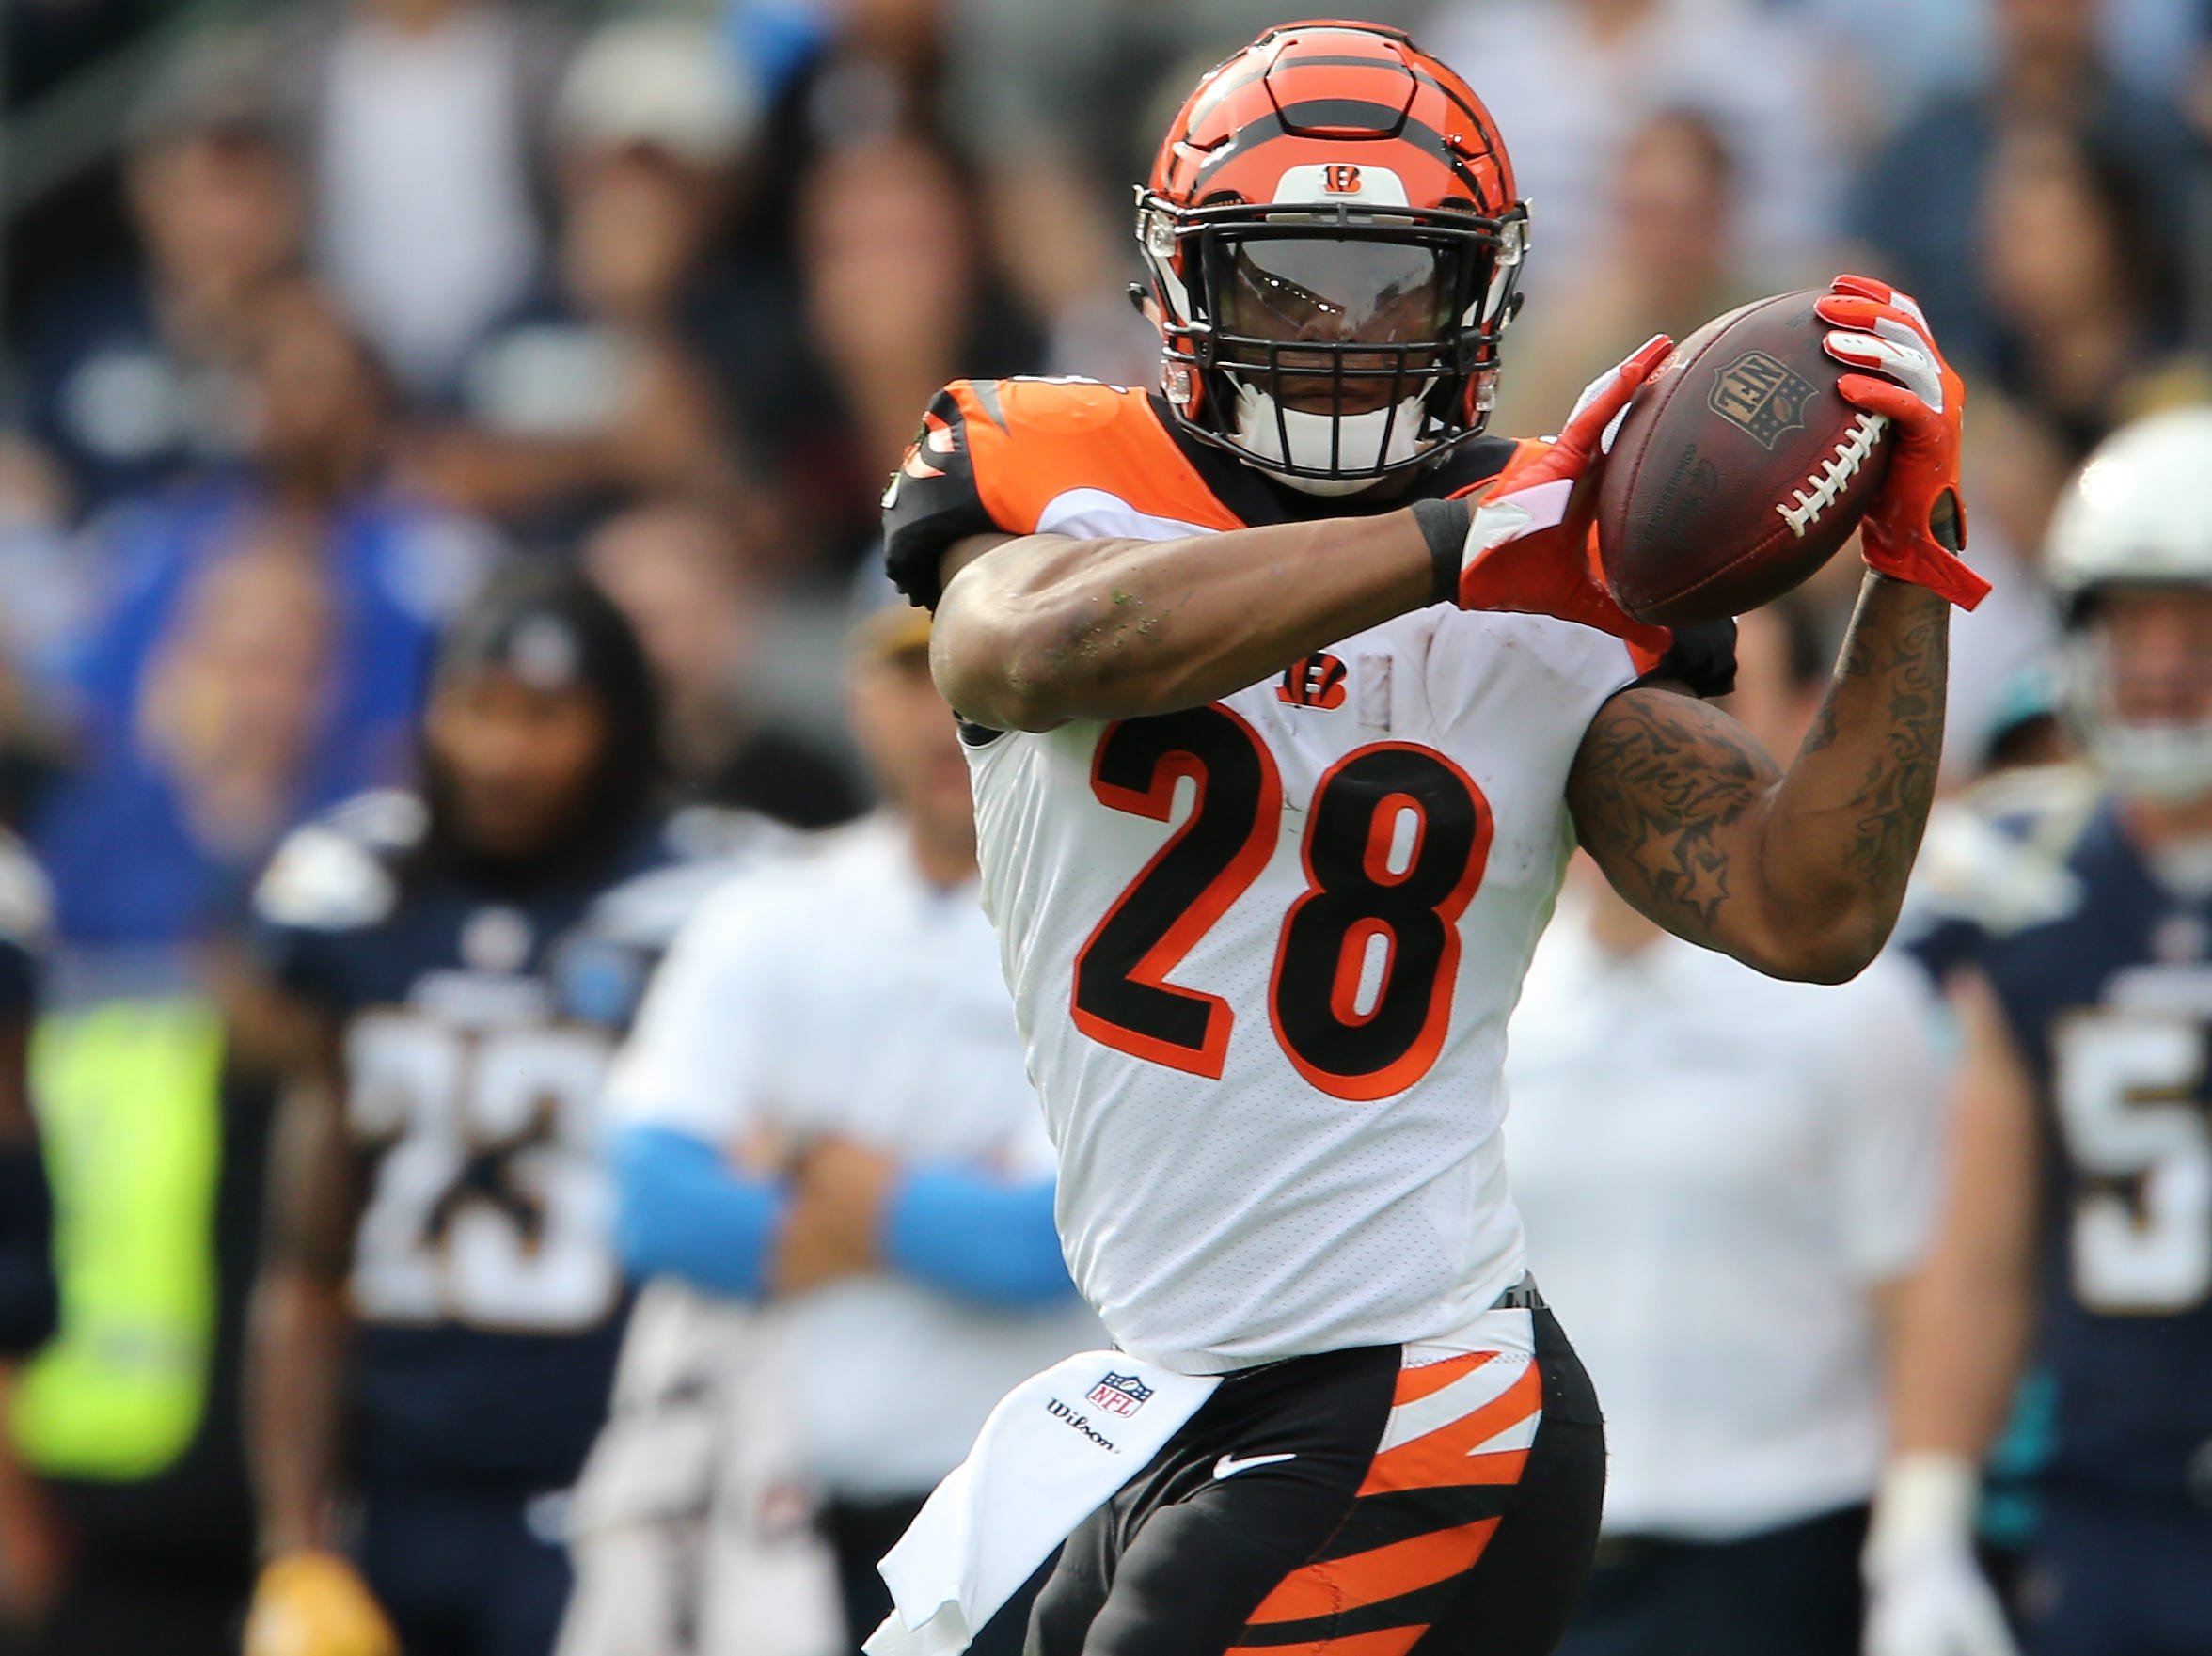 Cincinnati Bengals running back Joe Mixon (28) catches a pass in the first quarter of a Week 14 NFL football game against the Los Angeles Chargers, Sunday, Dec. 9, 2018, at StubHub Center in Carson, California.